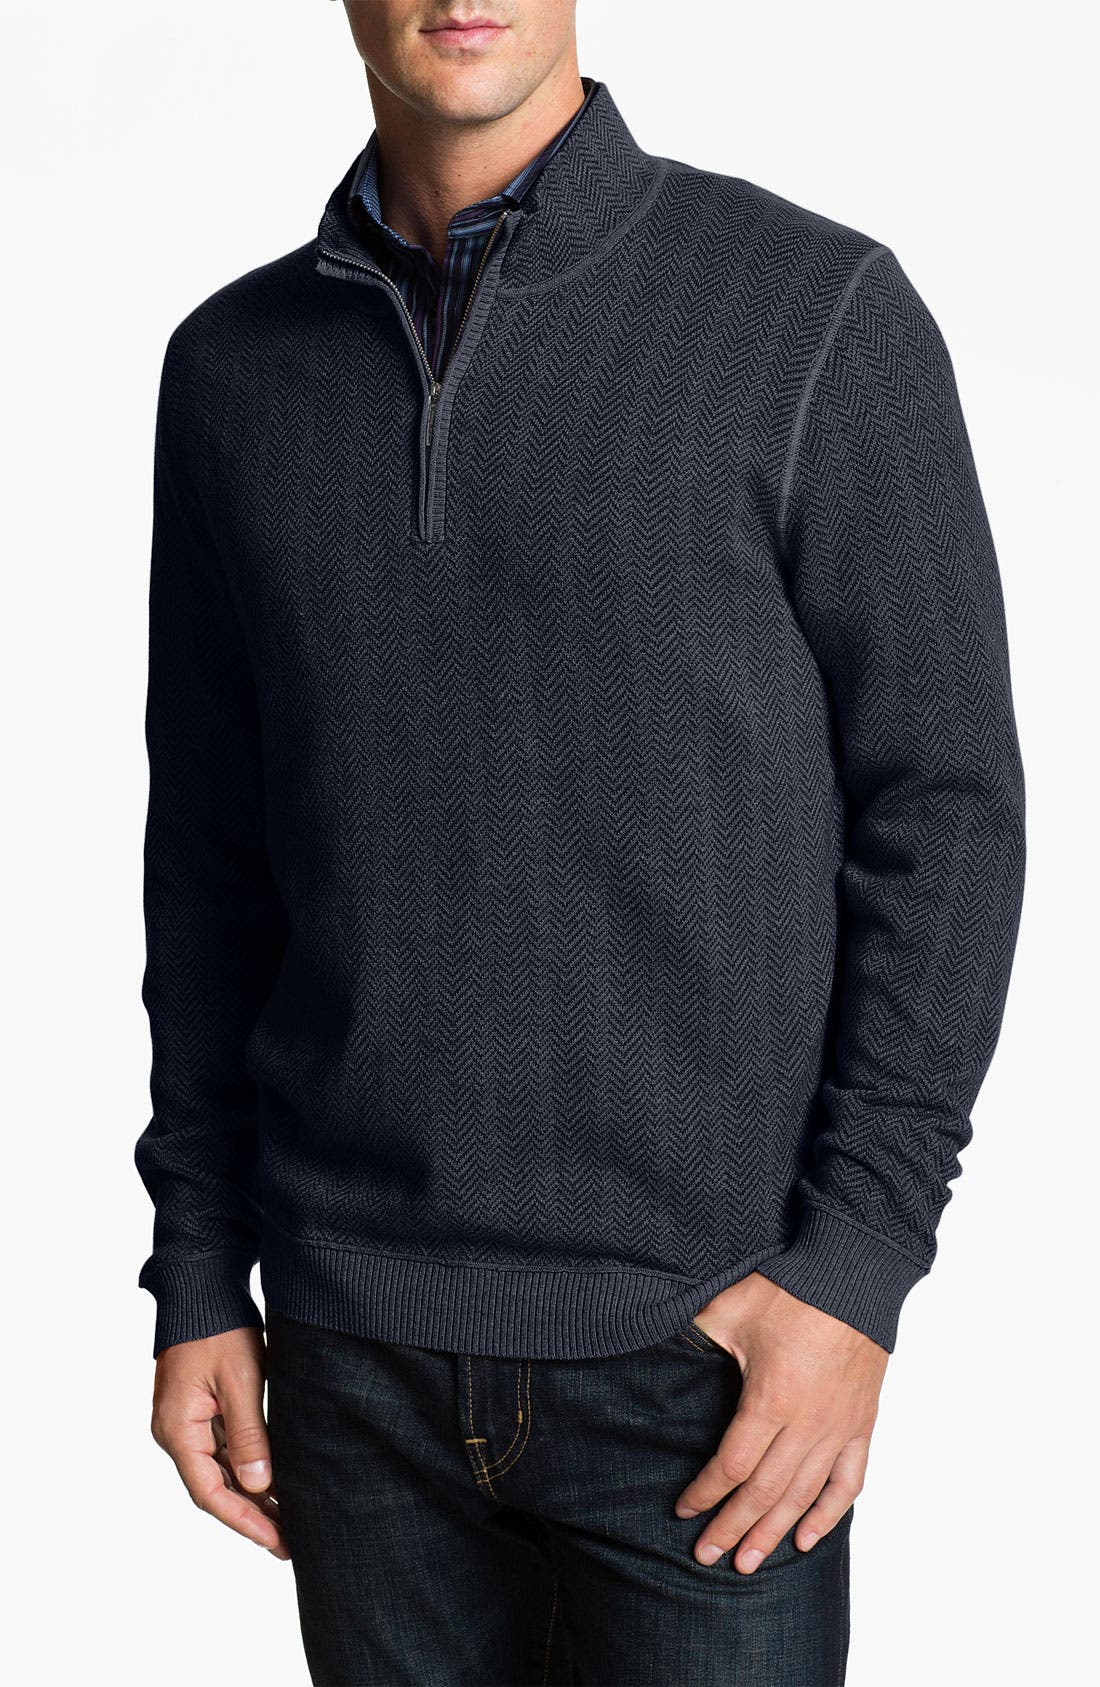 Alternate Image 1 Selected - Tommy Bahama 'High Season' Half Zip Sweater